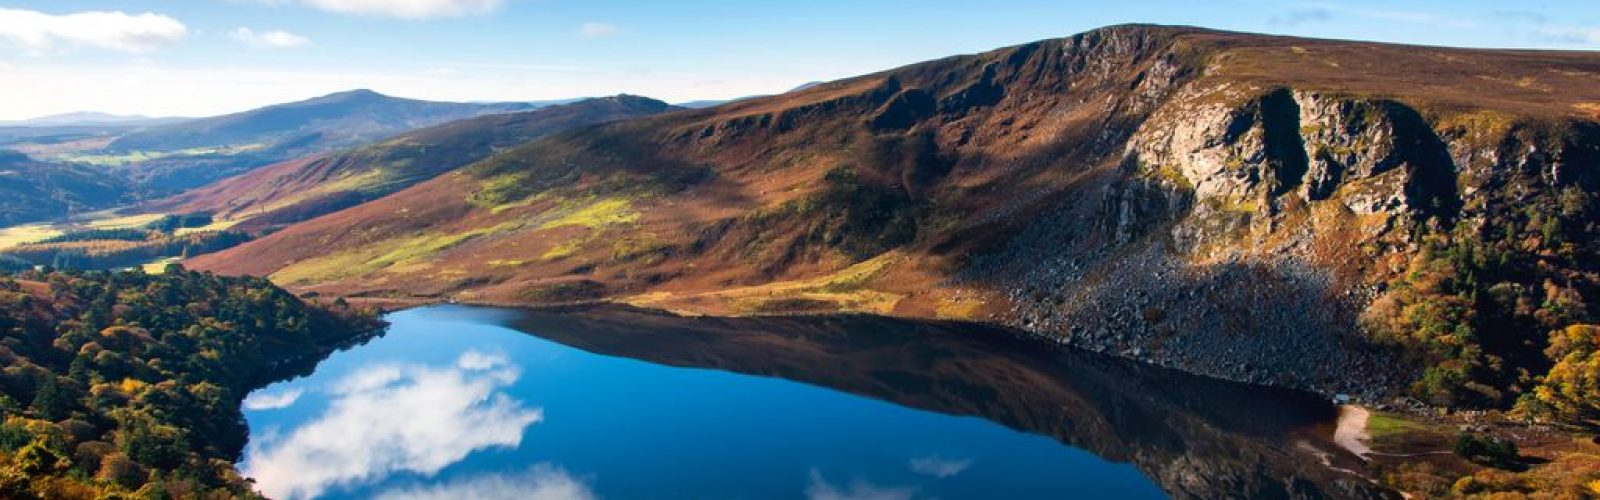 Irelands Ancient East, Lough Tay, Wicklow